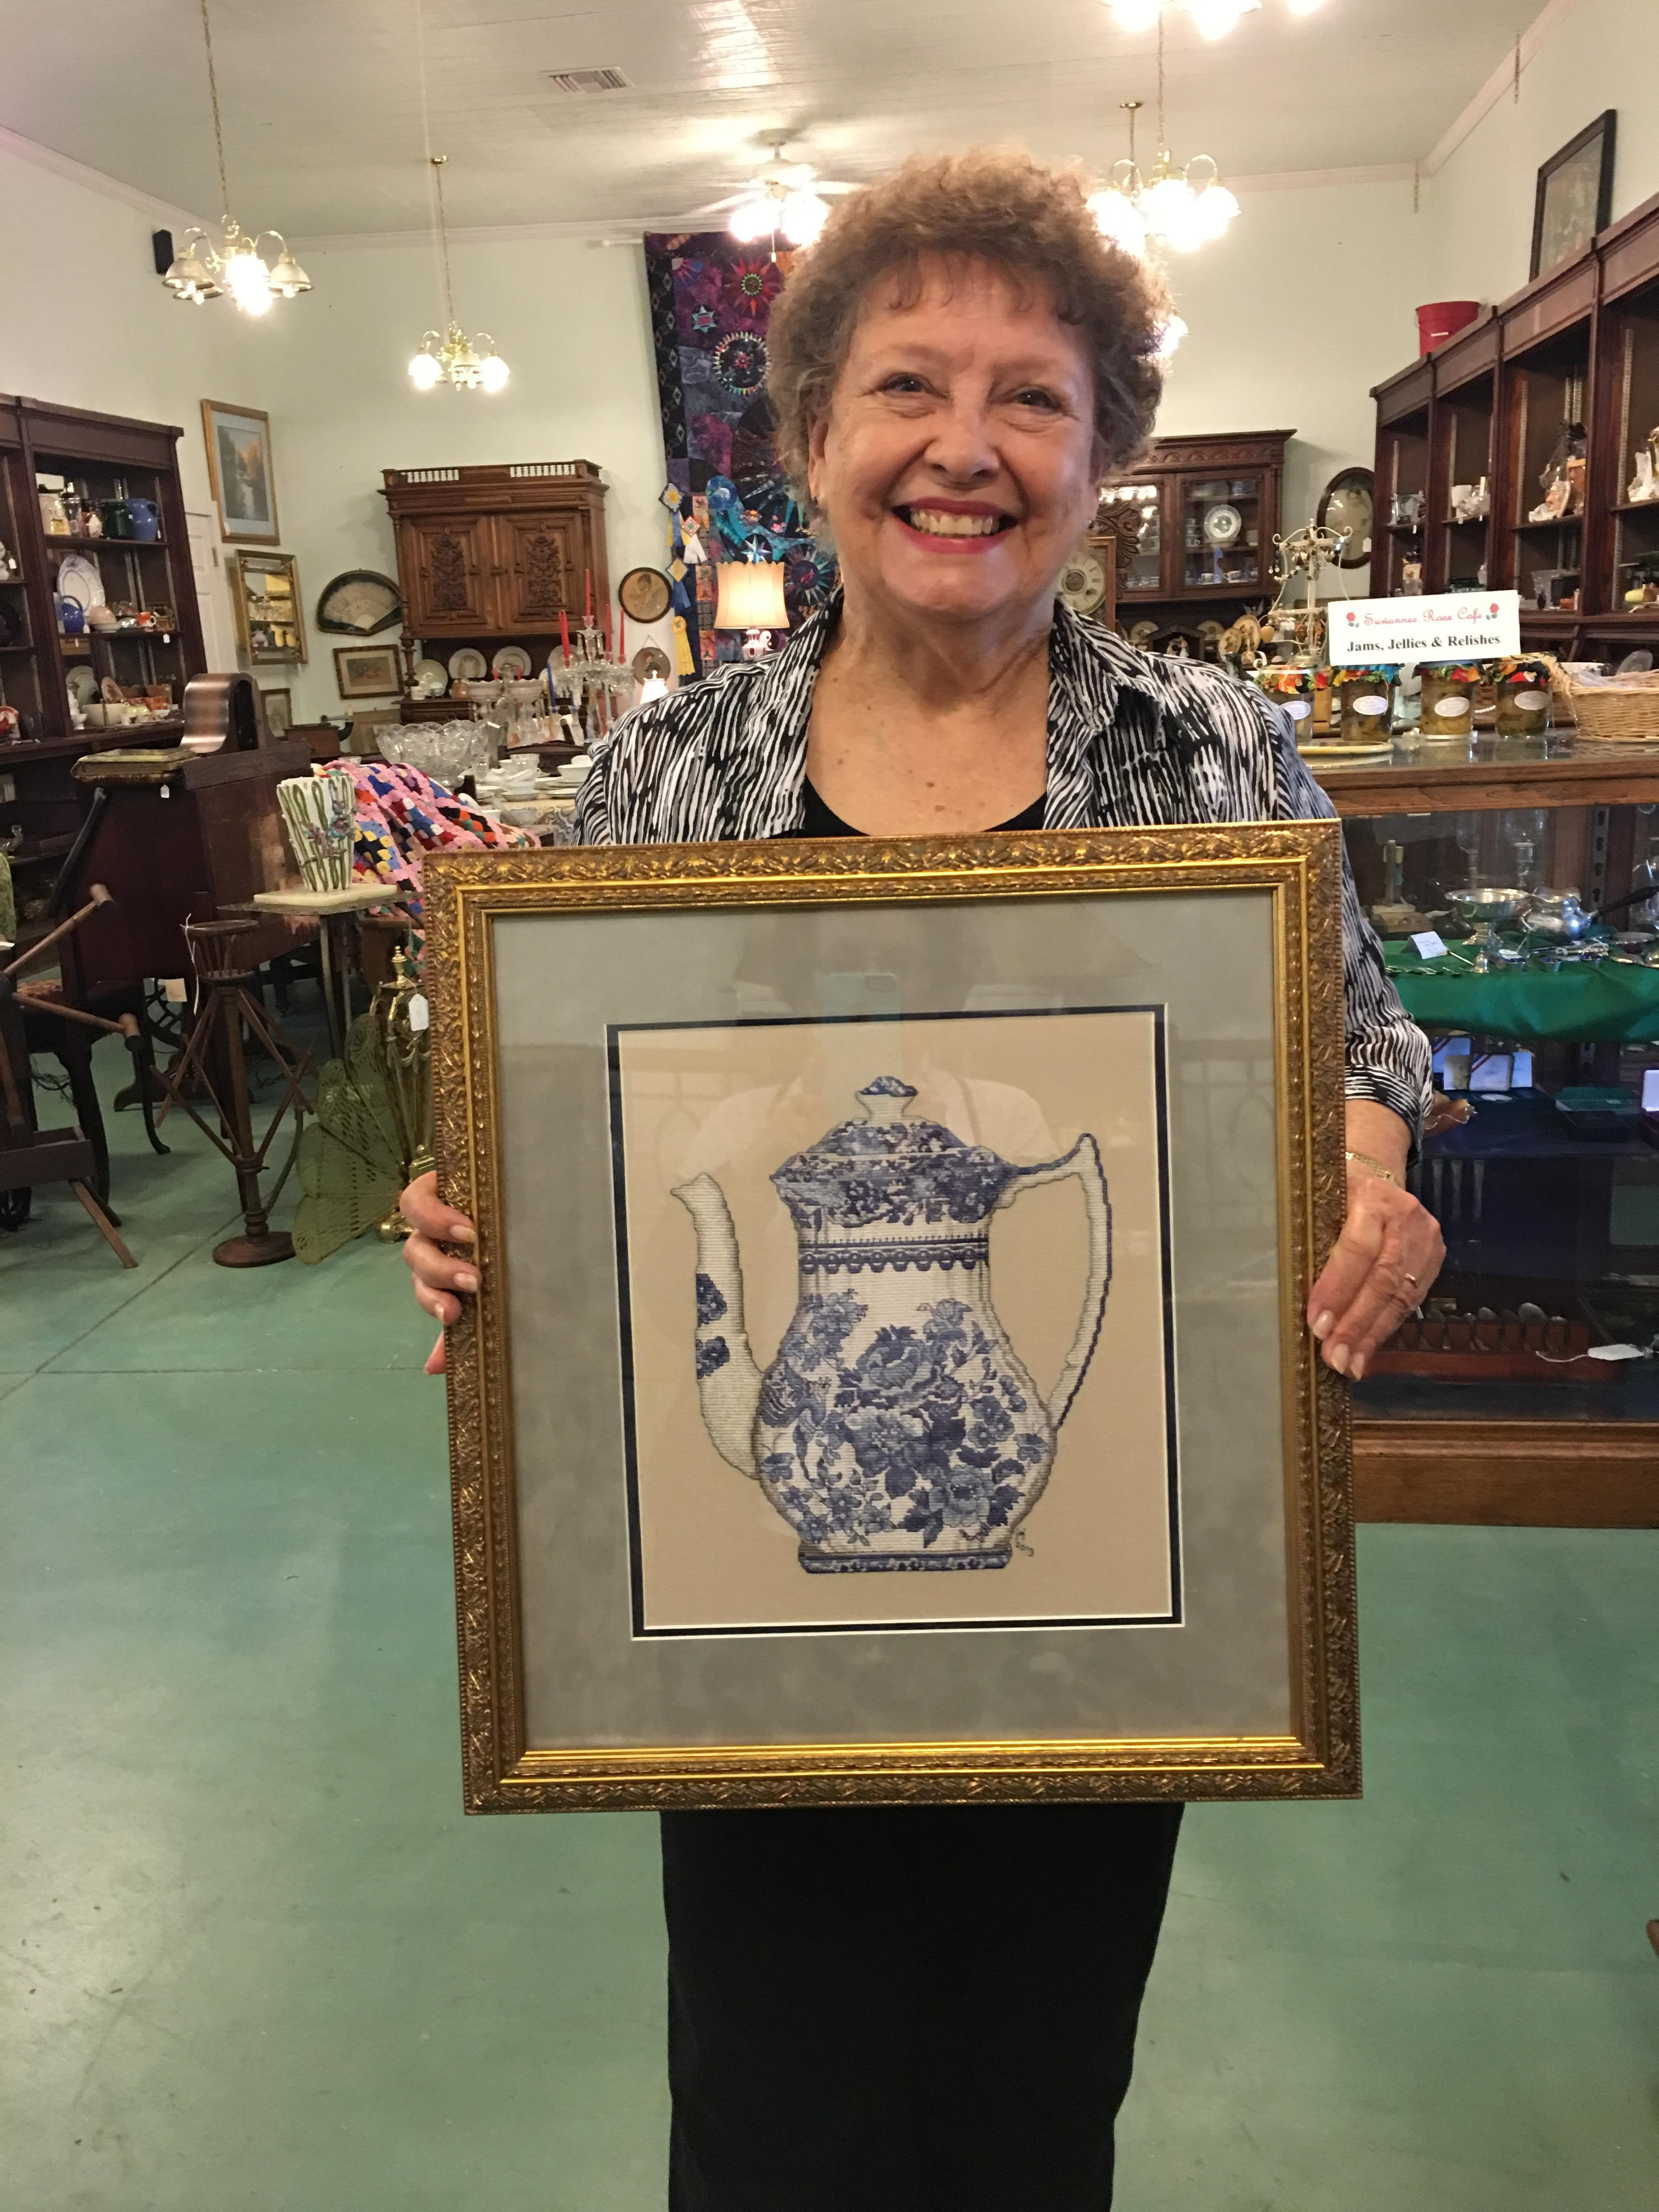 Suwannee Valley Cross Stitch and Framing